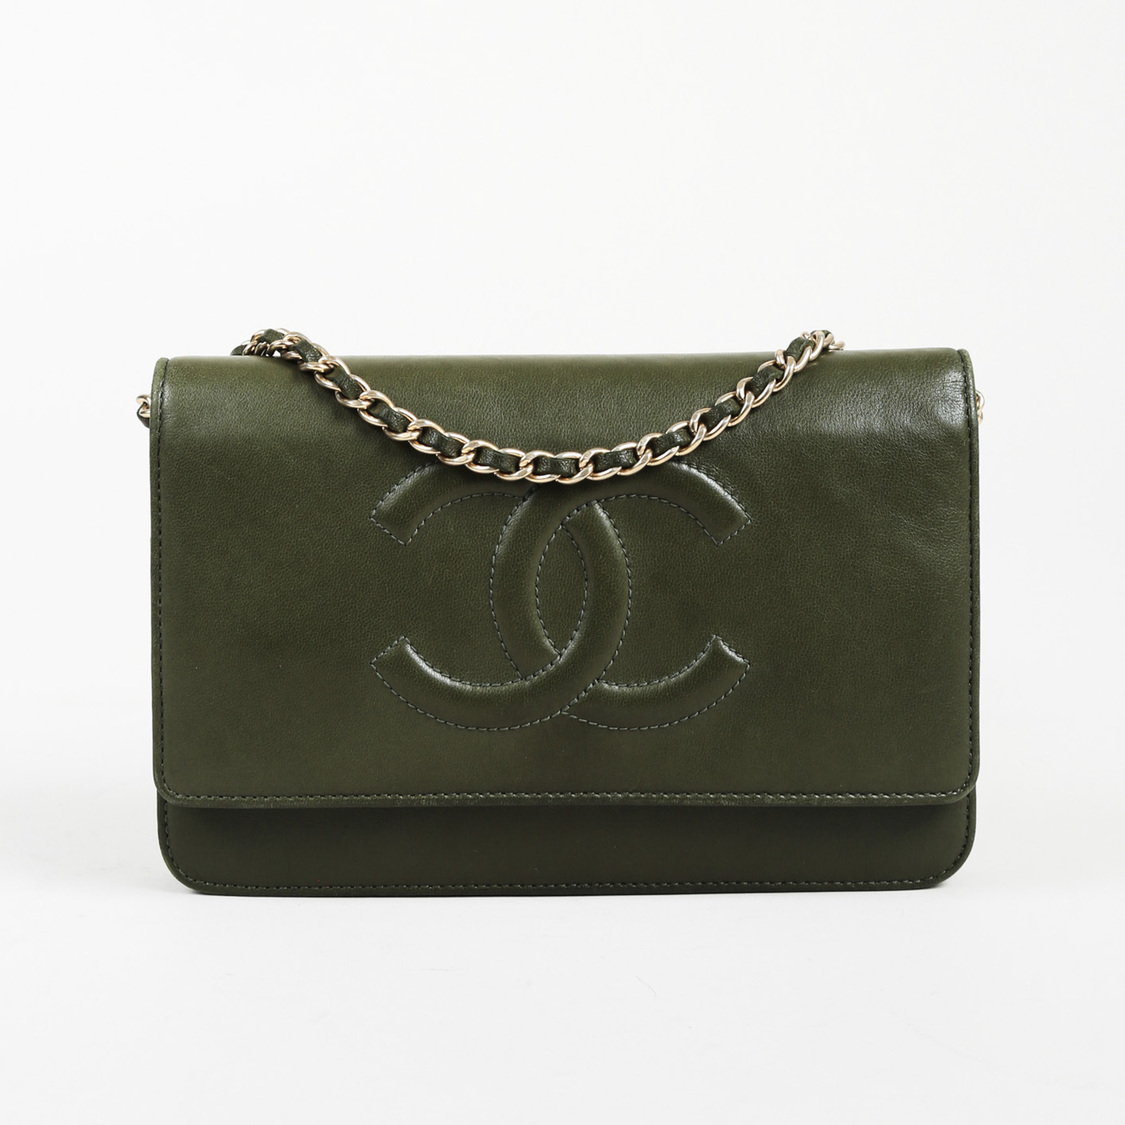 6ccd306c839a Details about Chanel Lambskin Leather